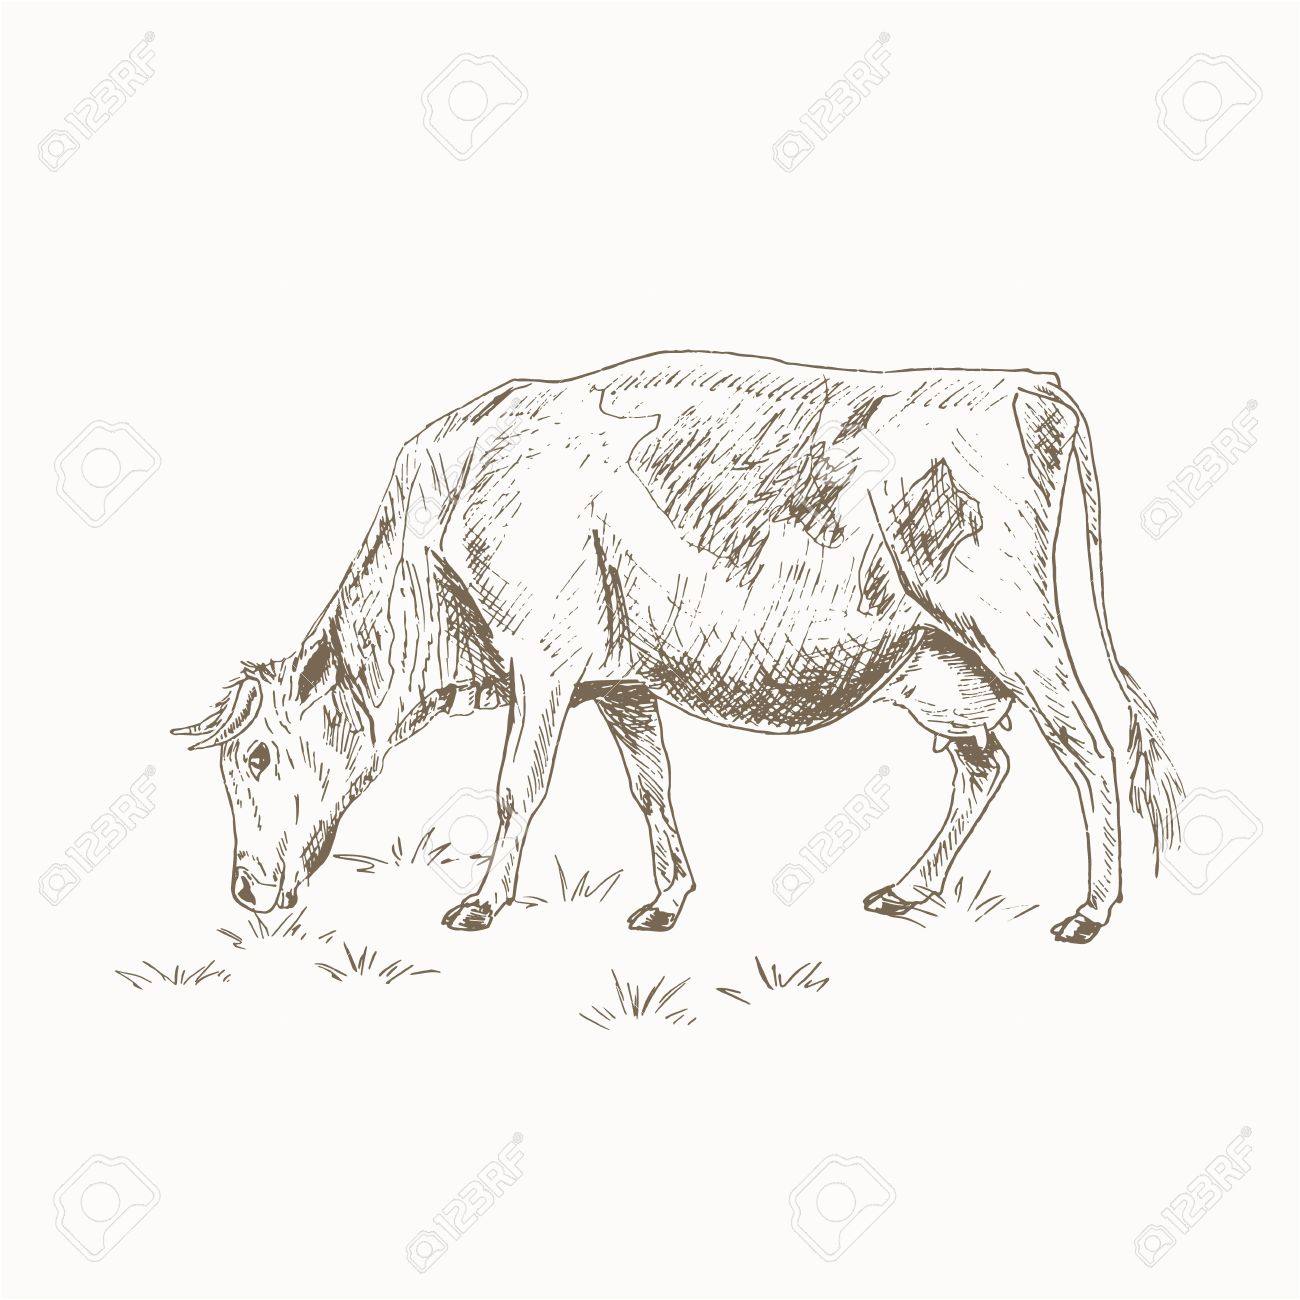 Cow Eating Grass Sketch Dairy Cattle Vctor Illustration Drawing Royalty Free Cliparts Vectors And Stock Illustration Image 55147014